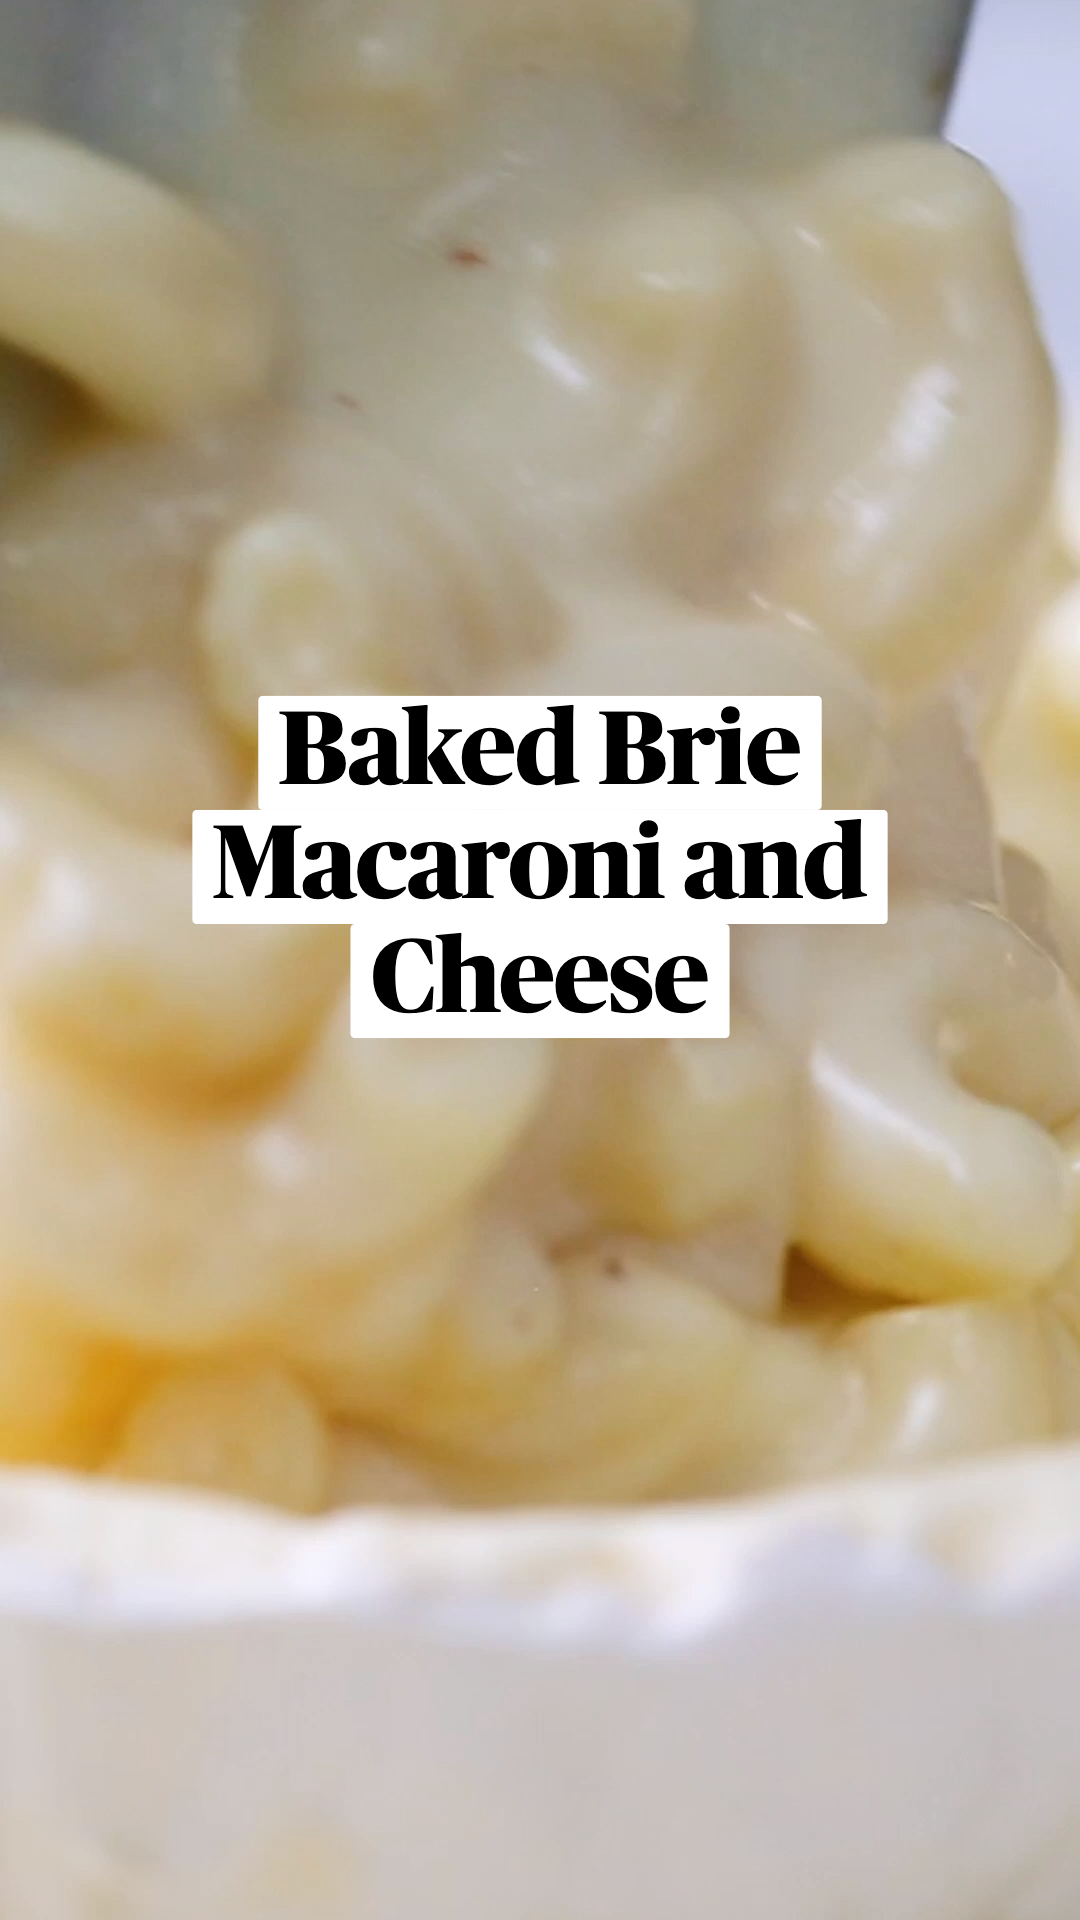 Baked Brie Macaroni and Cheese